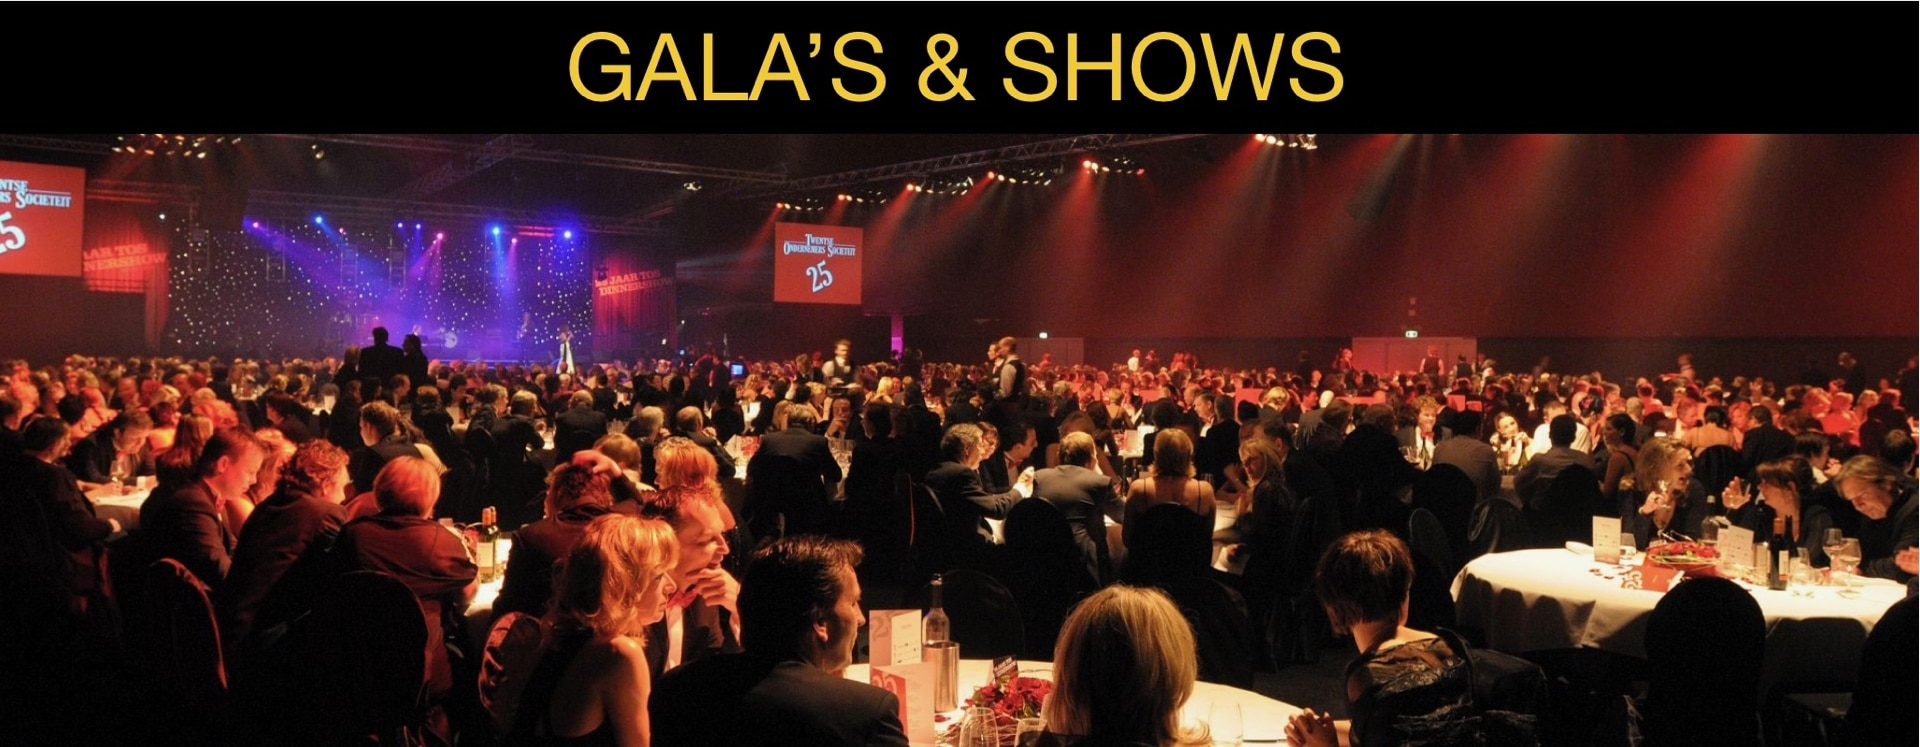 4YourEvents Slider Gala's & Shows Homepage